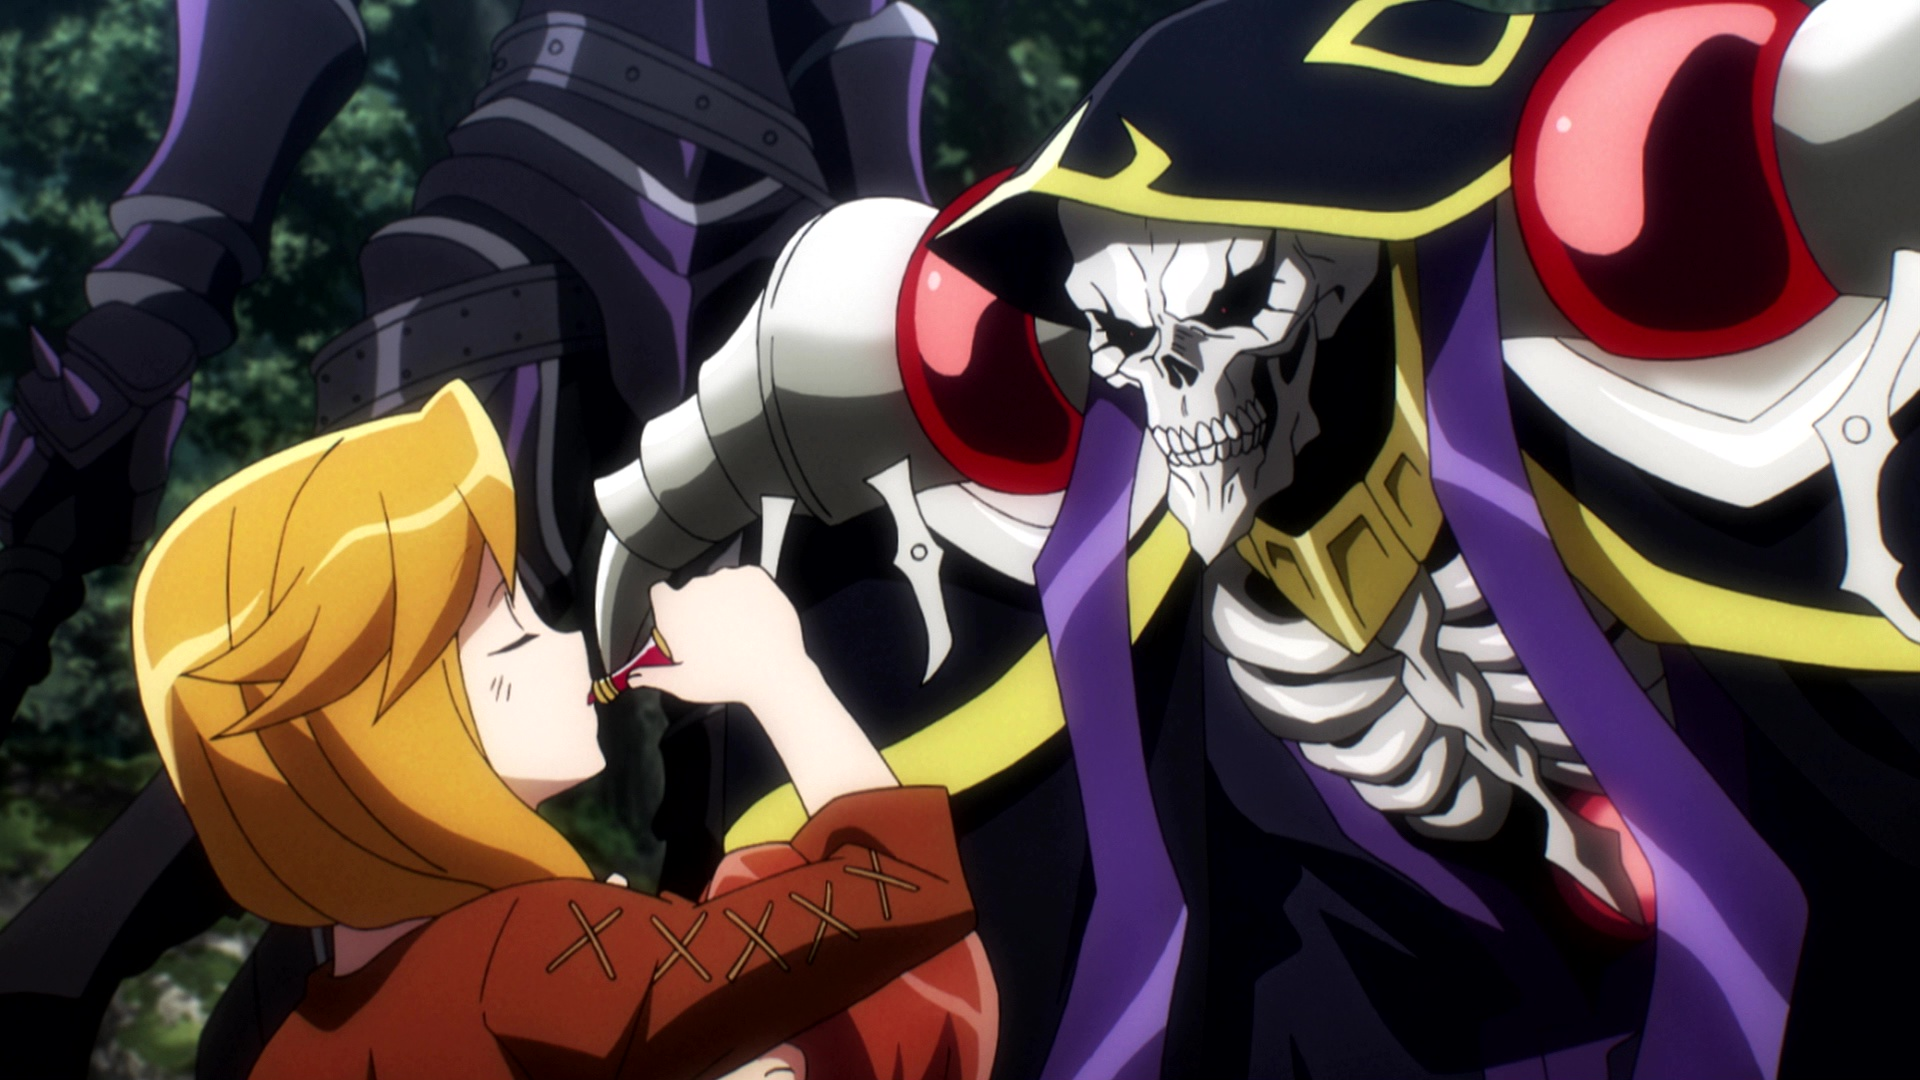 Watch Overlord Season 1 Episode 3 Sub & Dub | Anime